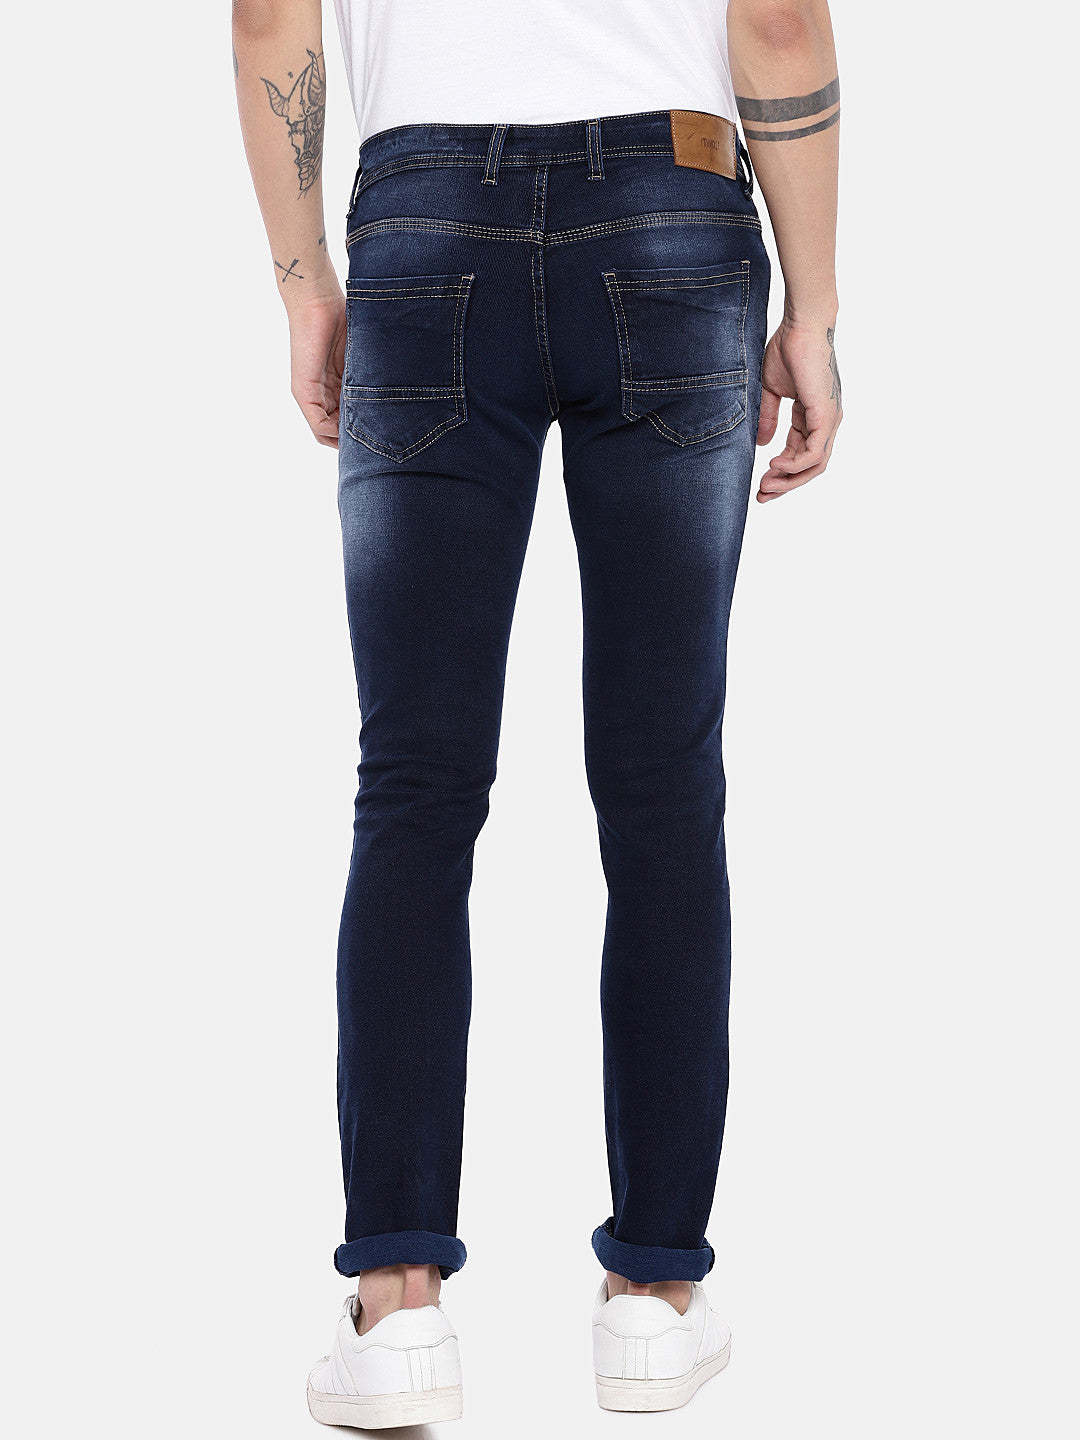 Blue Regular Fit Mid-Rise Clean Look Jeans-3